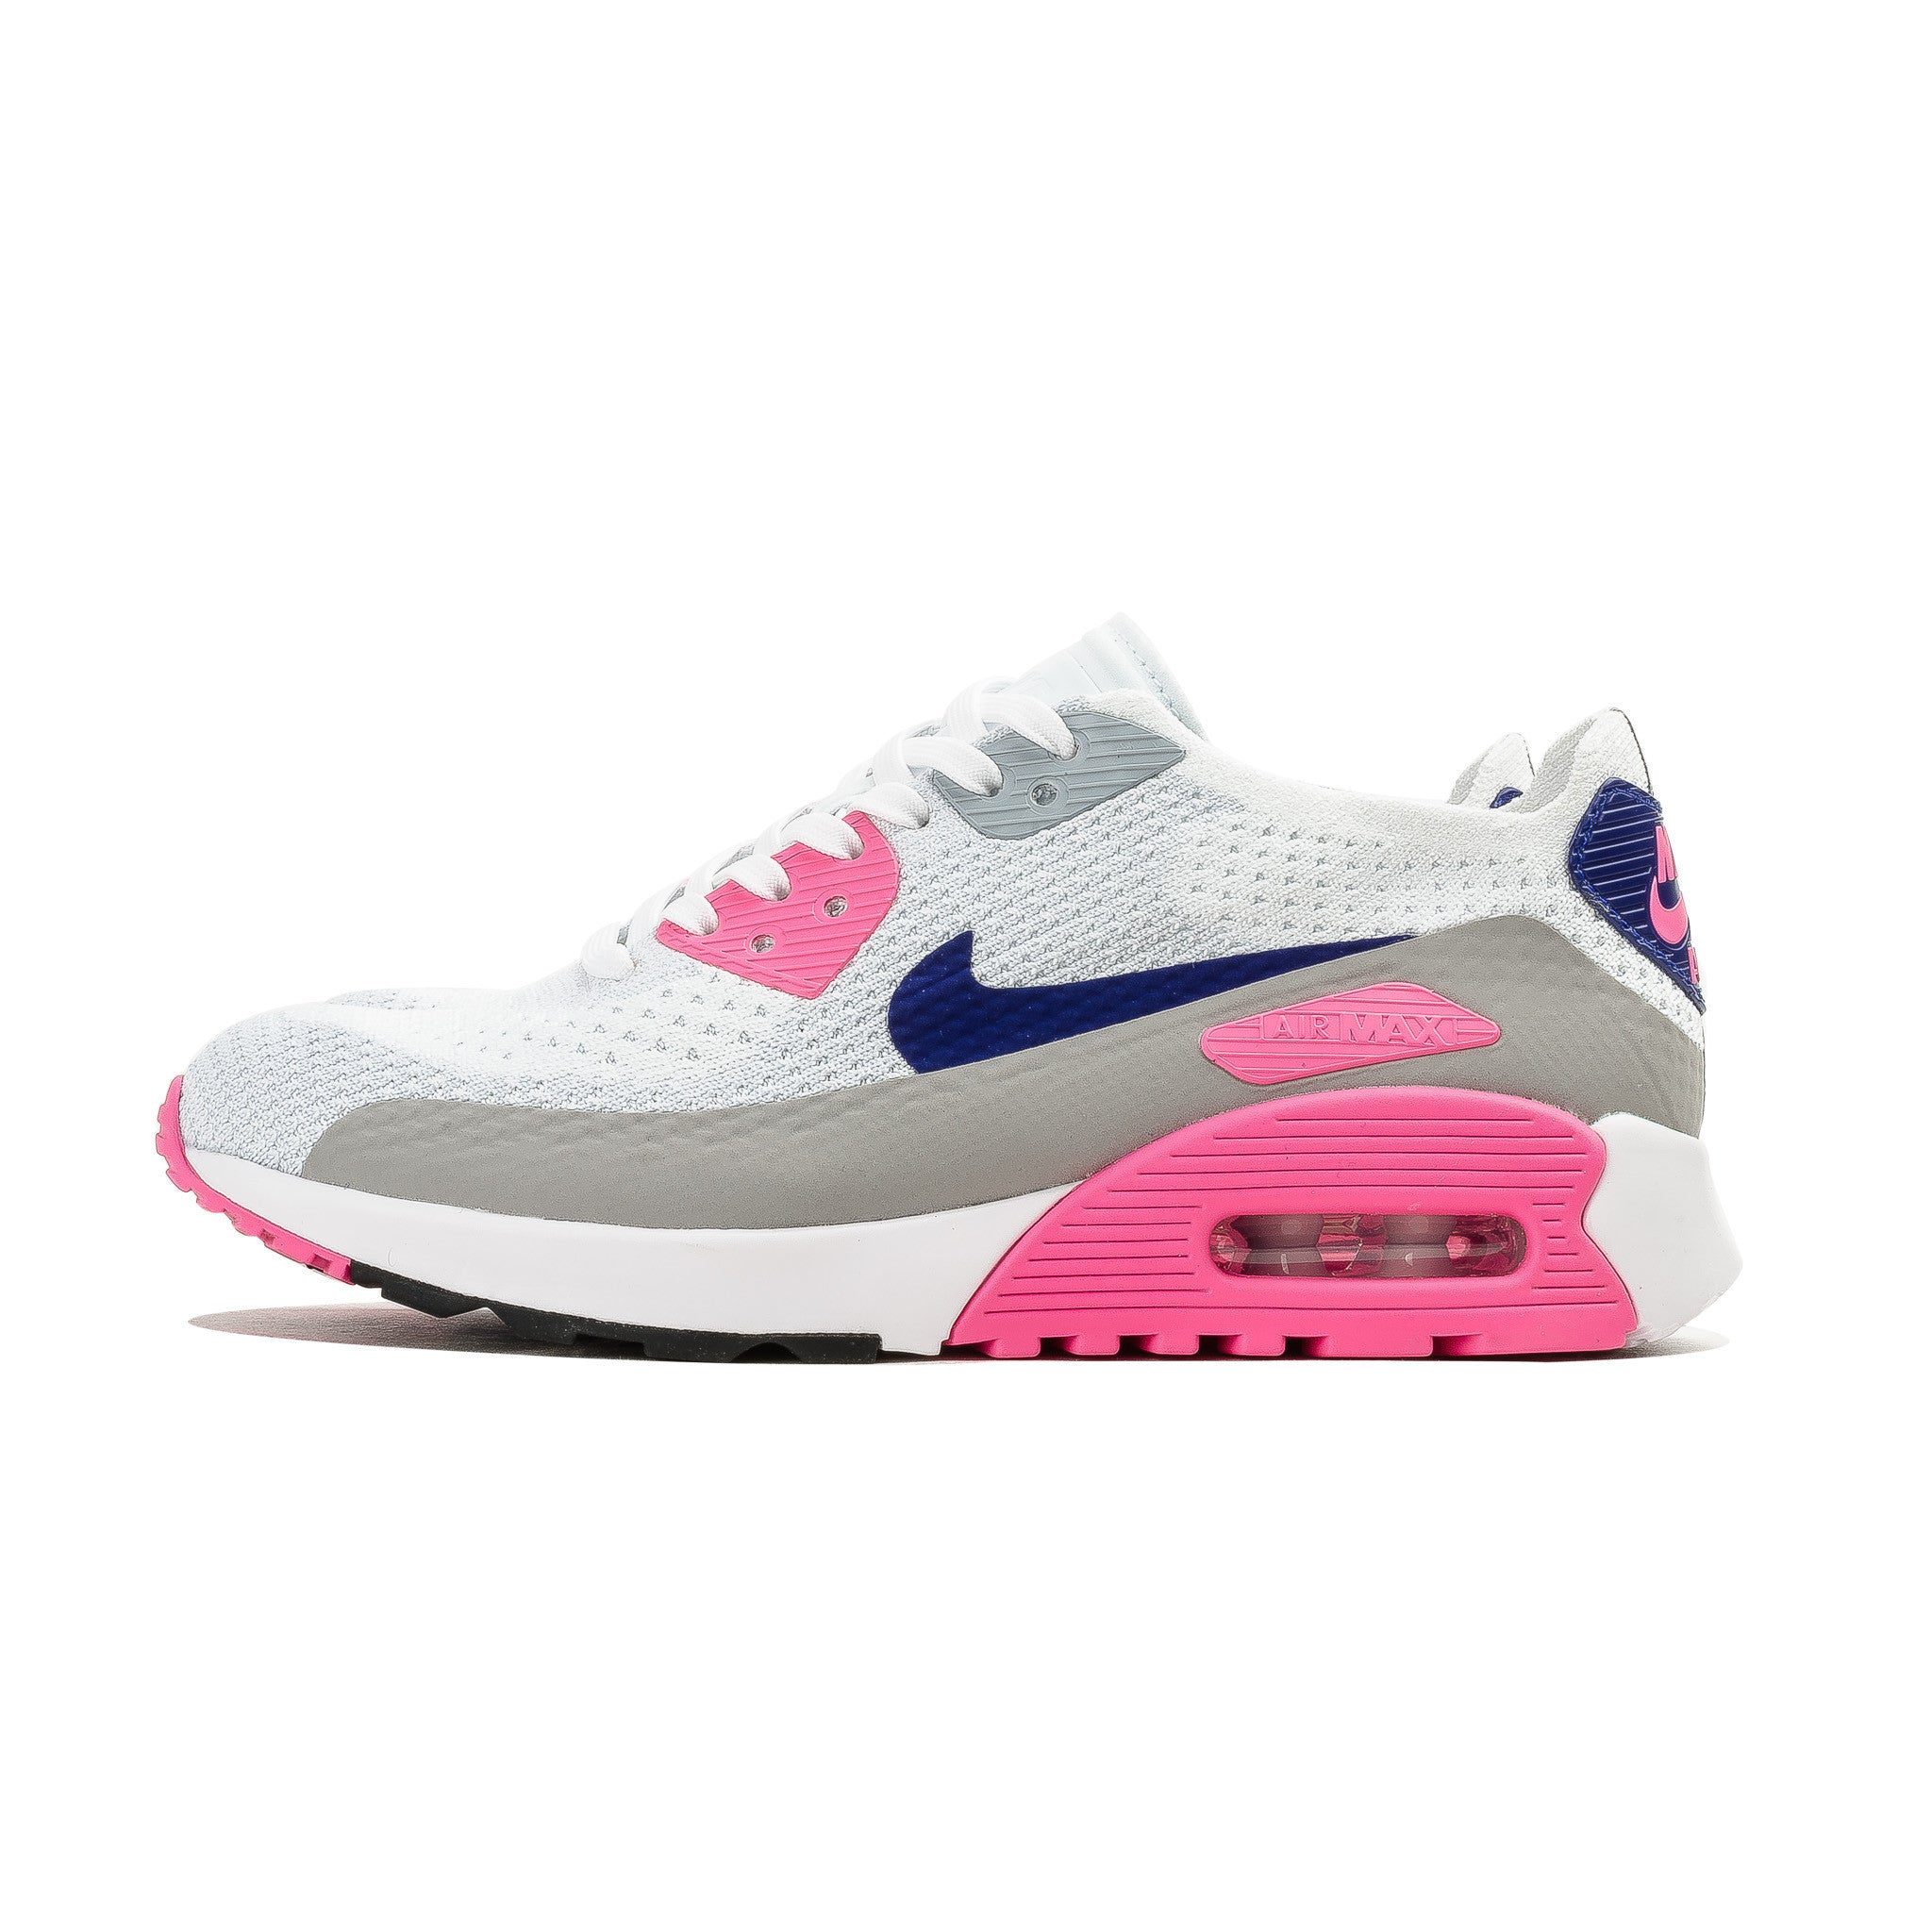 W Air Max 90 Ultra 2.0 Flyknit 881109-101 White